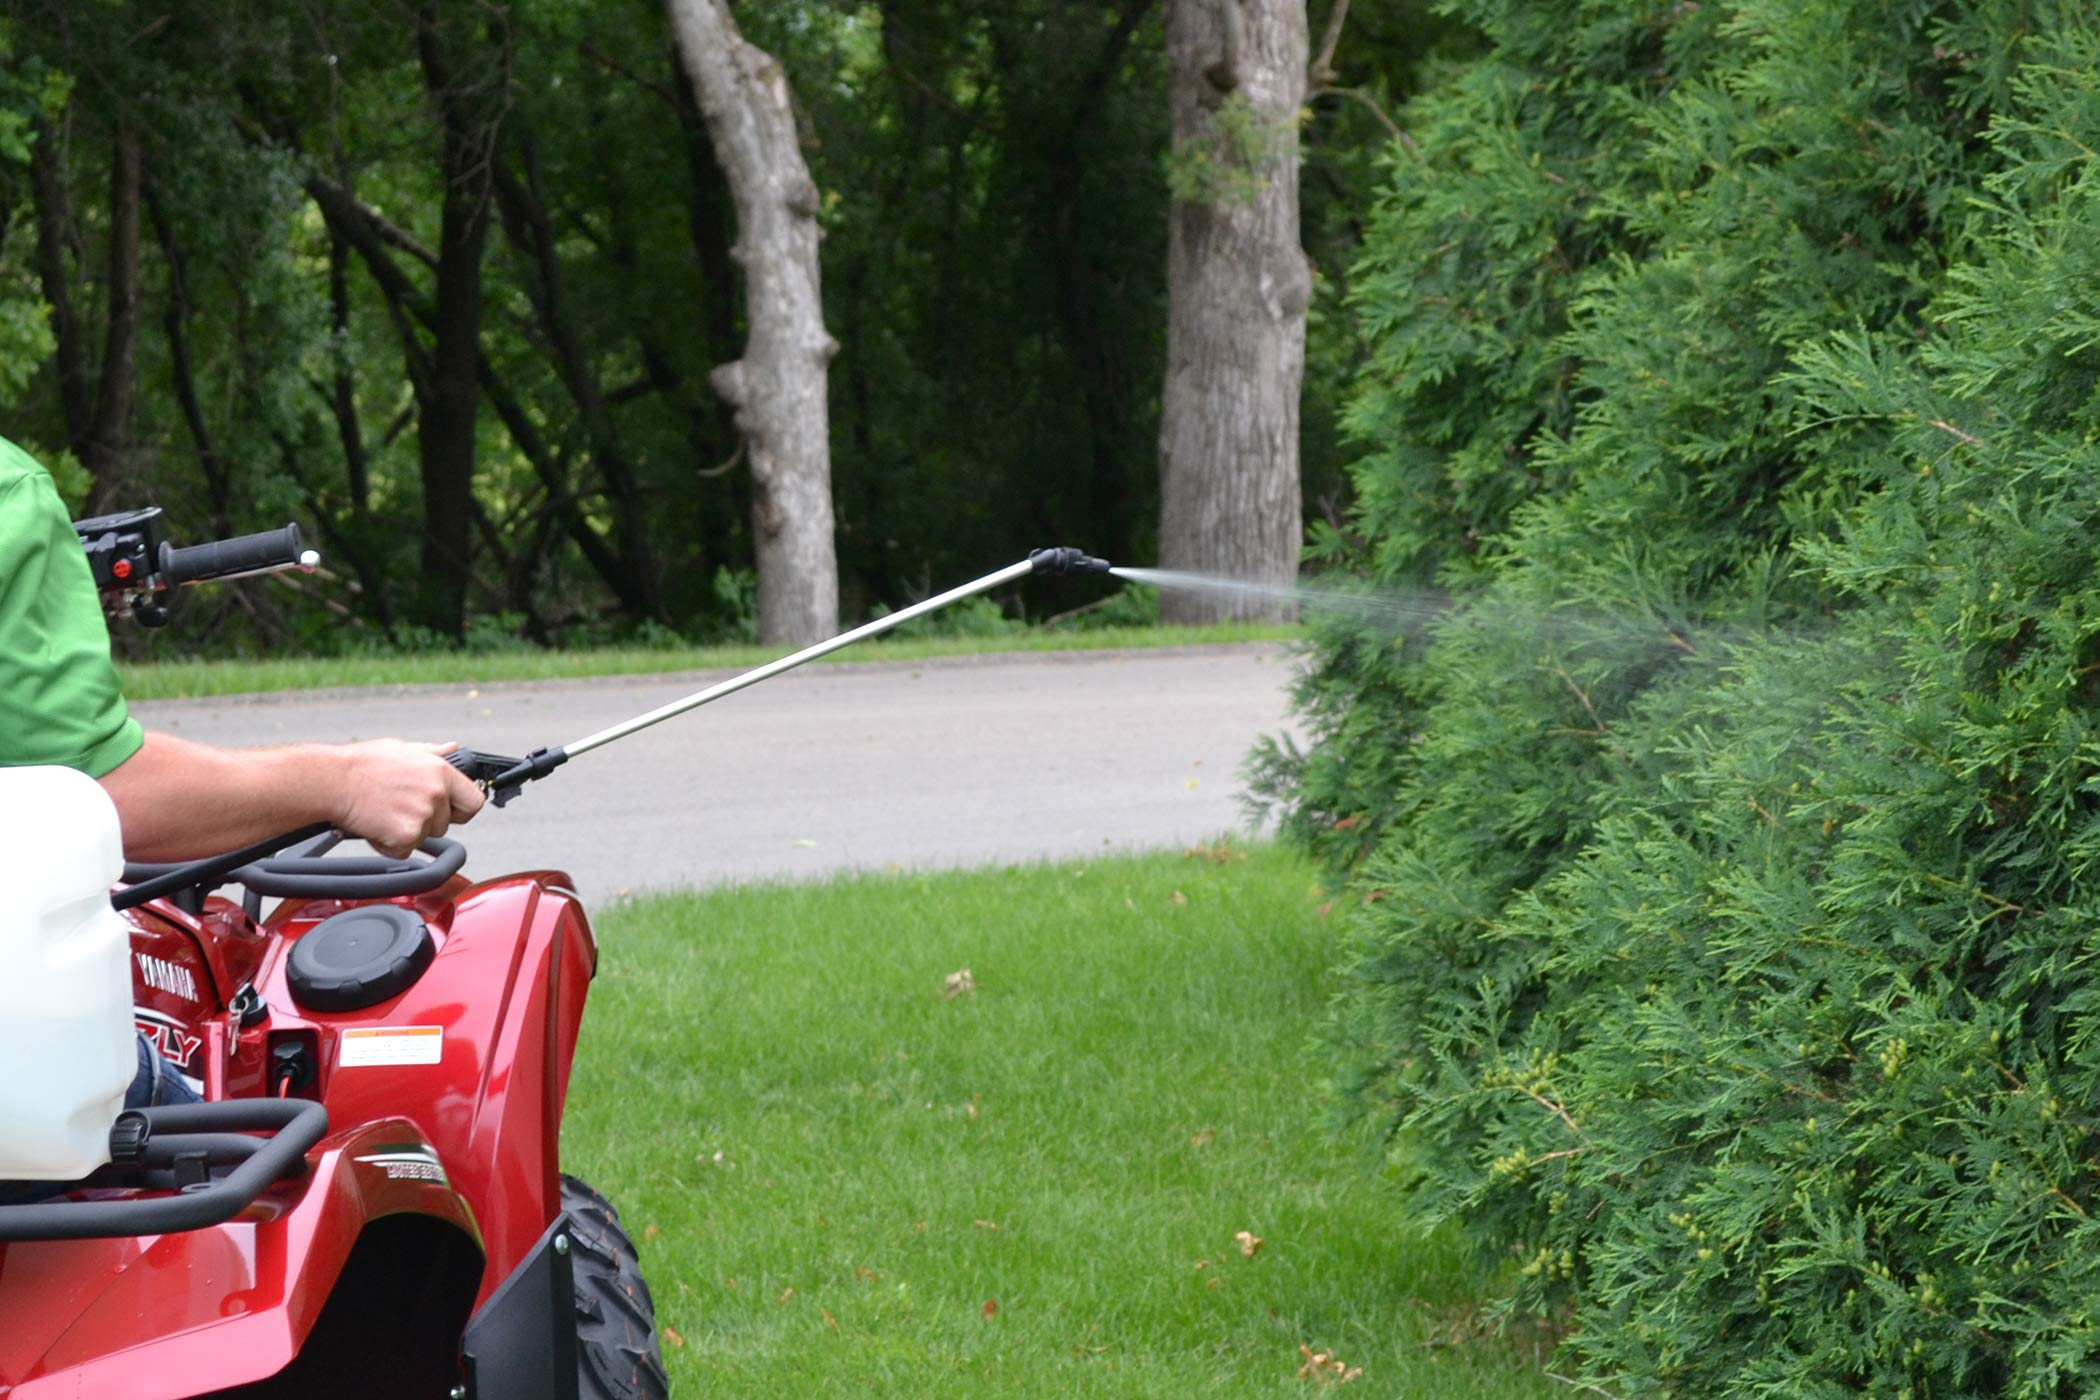 Master Manufacturing SSO-01-015A-MM 15 Gallon Spot Sprayer-Everflo 2.2 GPM by Master Manufacturing (Image #6)